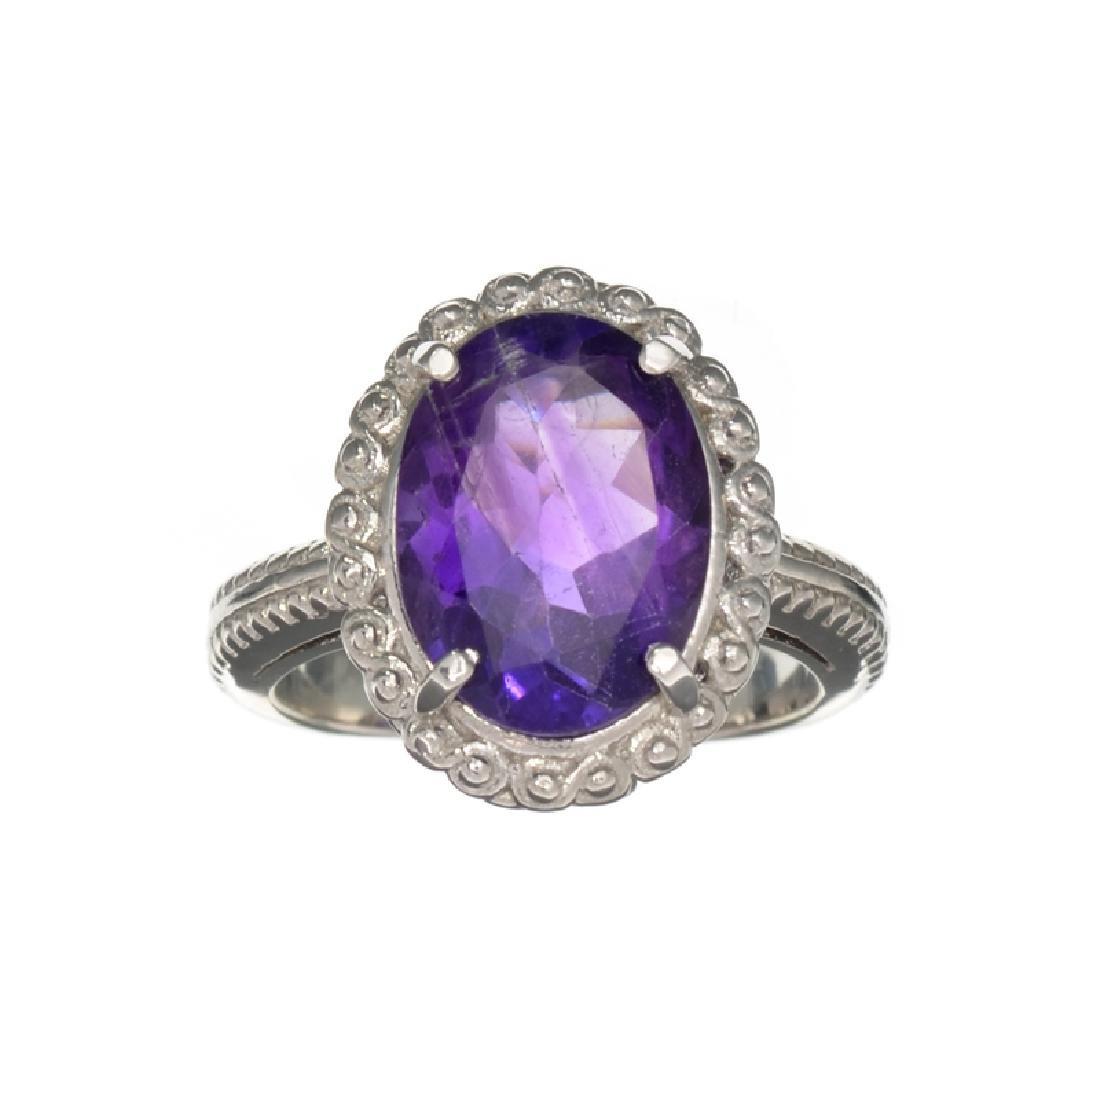 APP: 0.6k Fine Jewelry 5.47CT Oval Cut Purple Amethyst